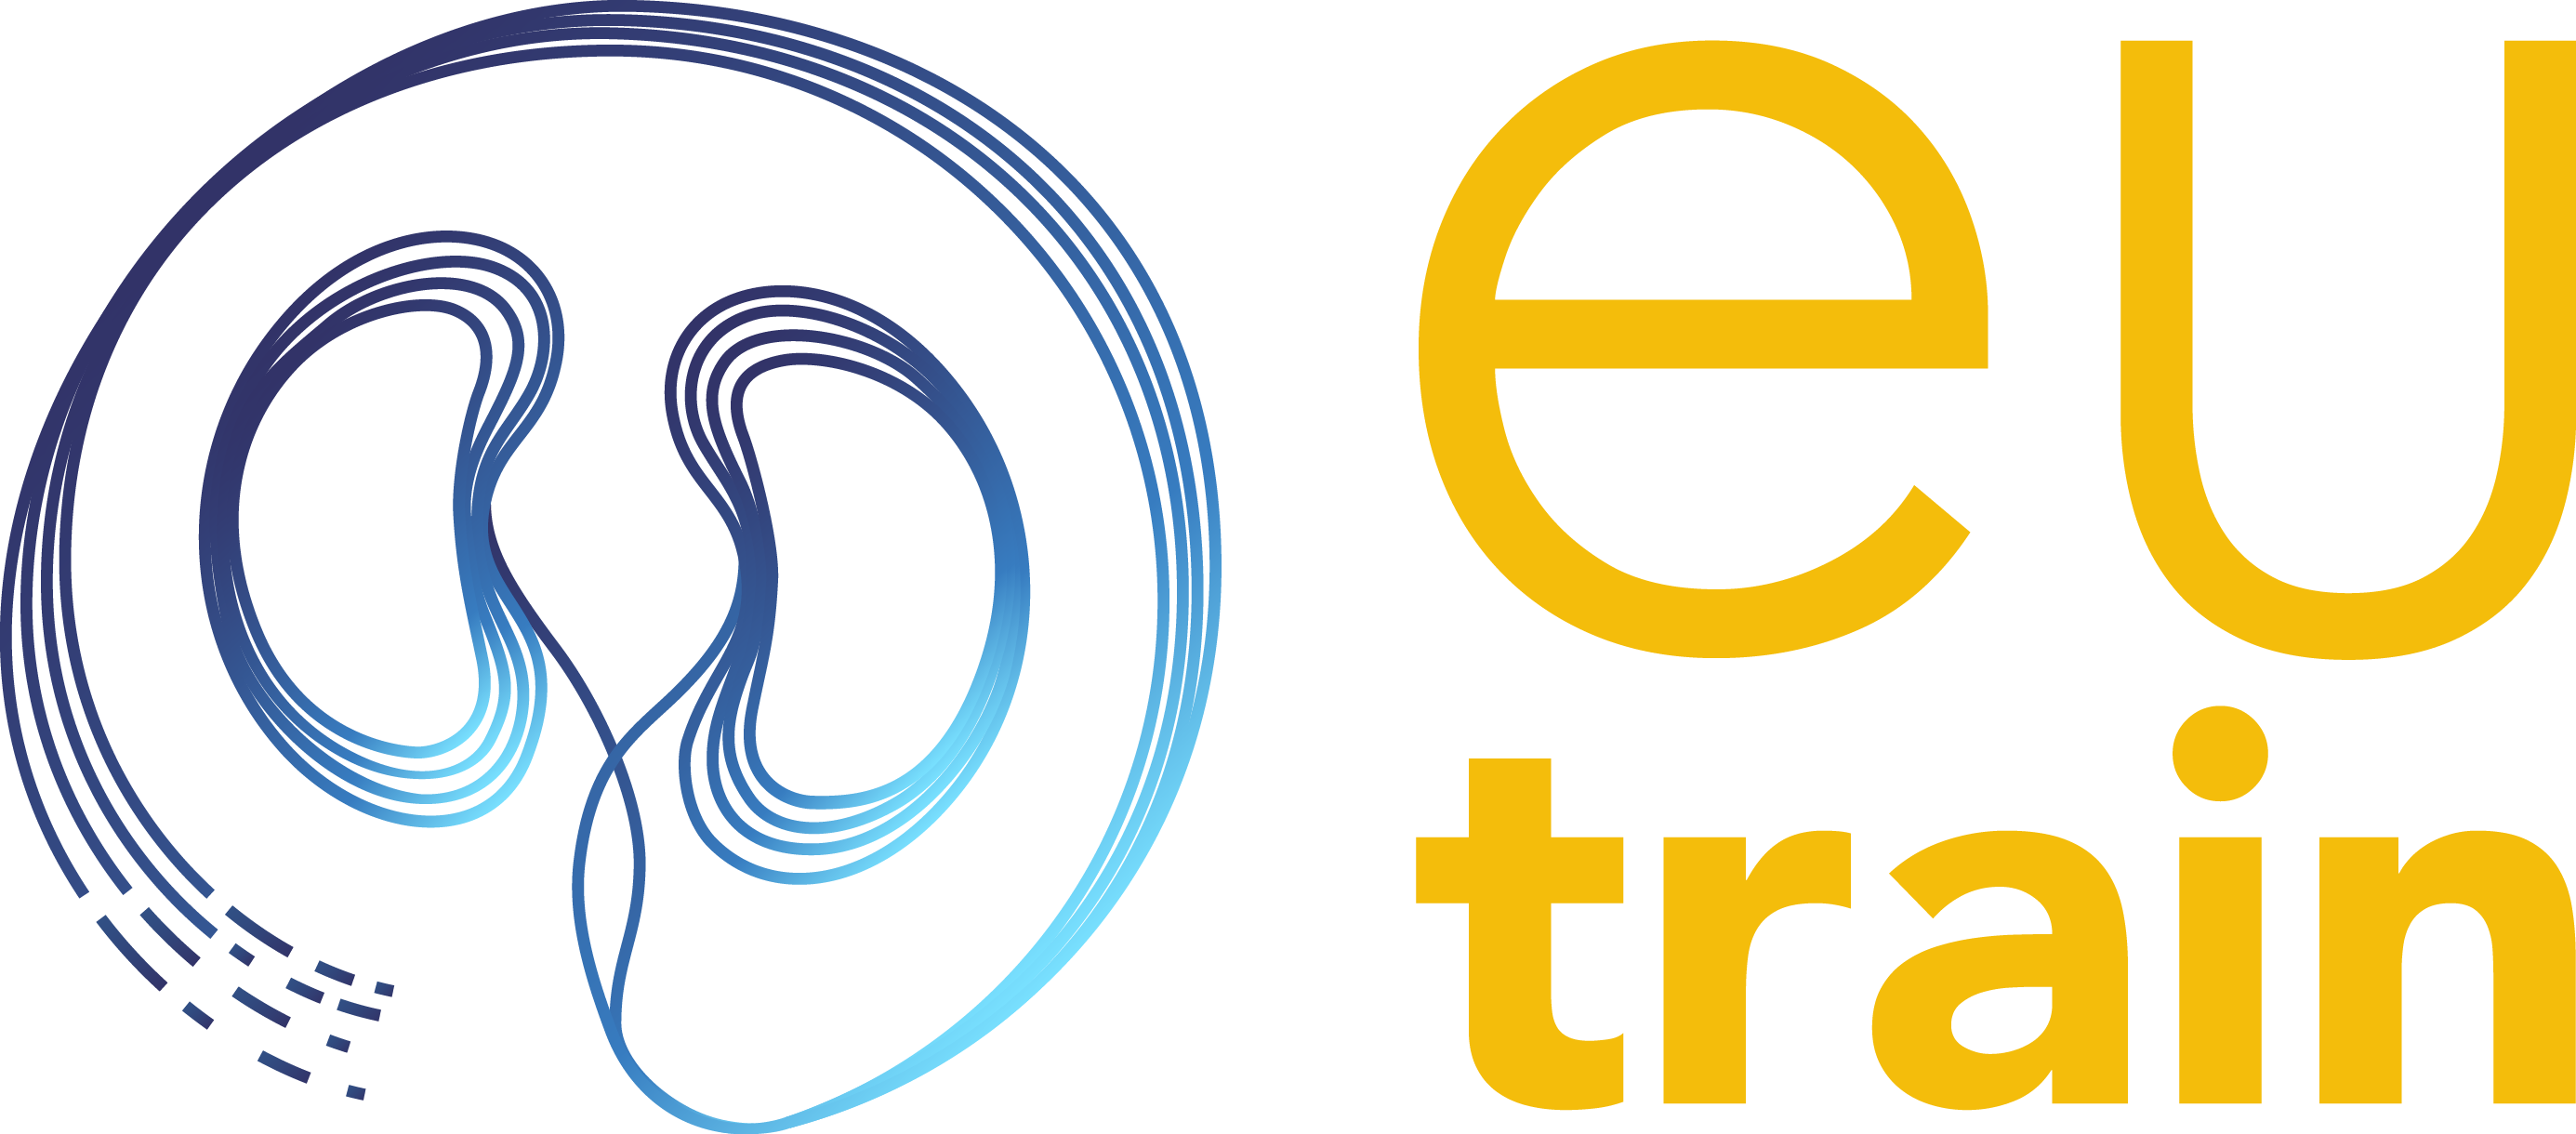 The EUropean TRAnsplantation and INnovation (EU-TRAIN) consortium for improving diagnosis and risk stratification in kidney transplant patients